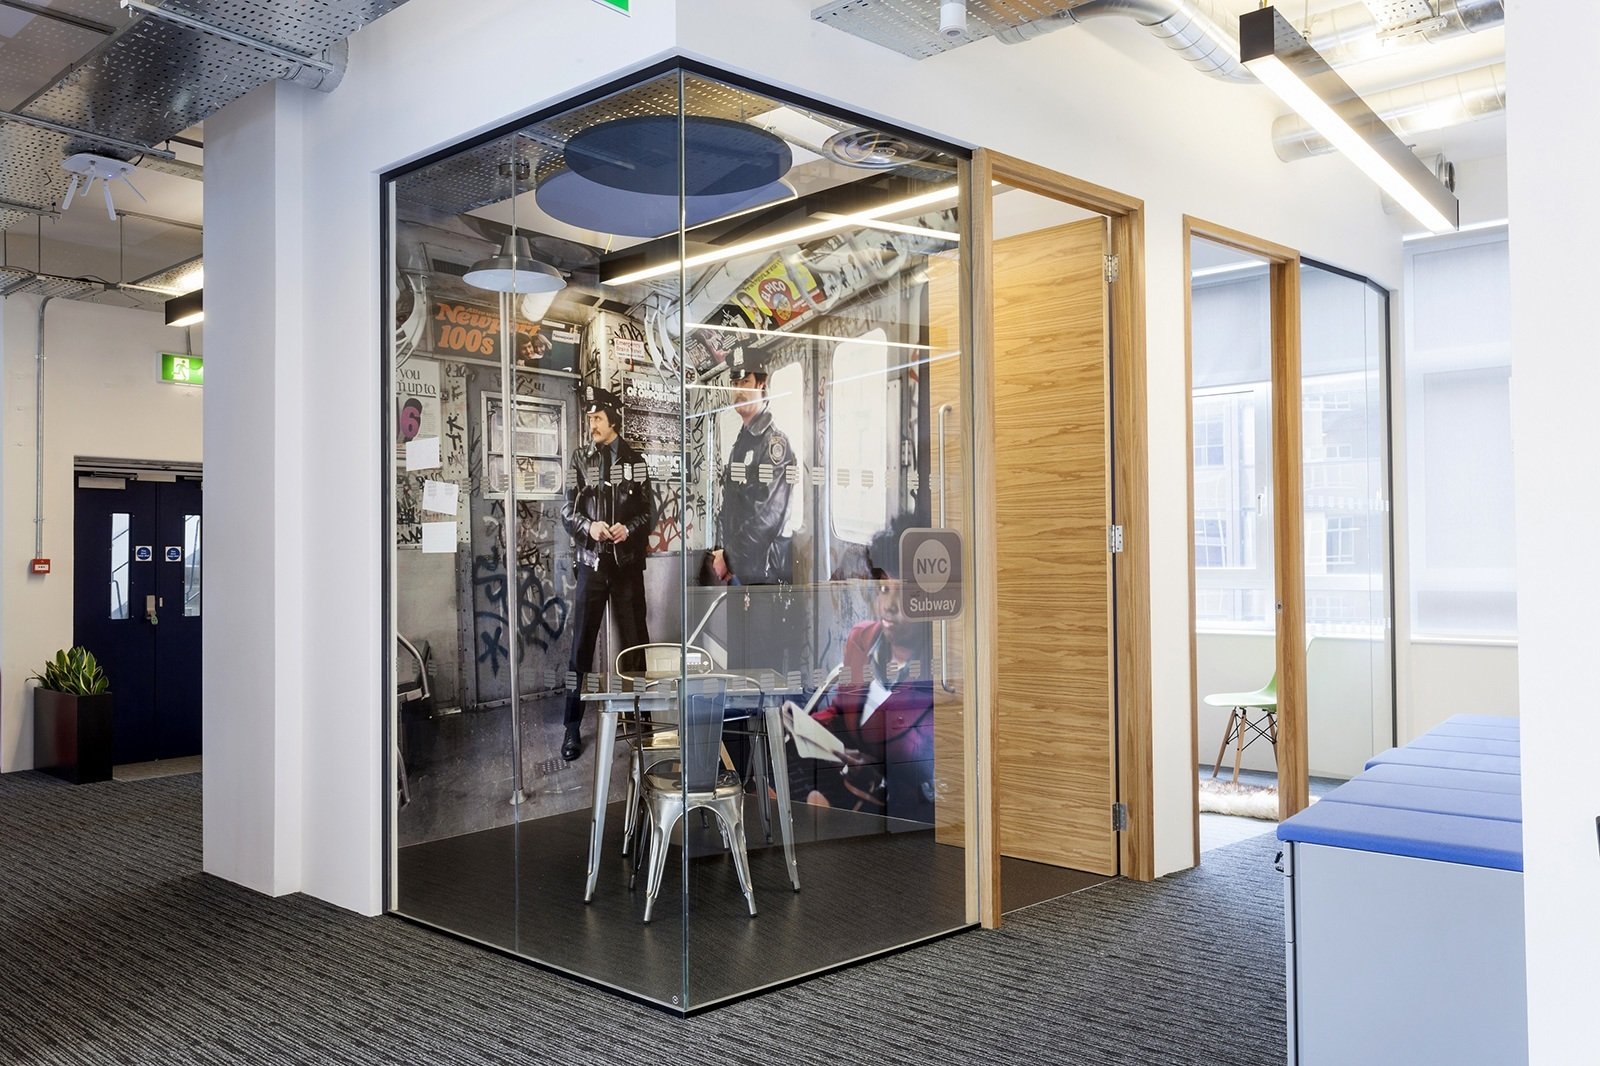 stack-exchange-london-office-8